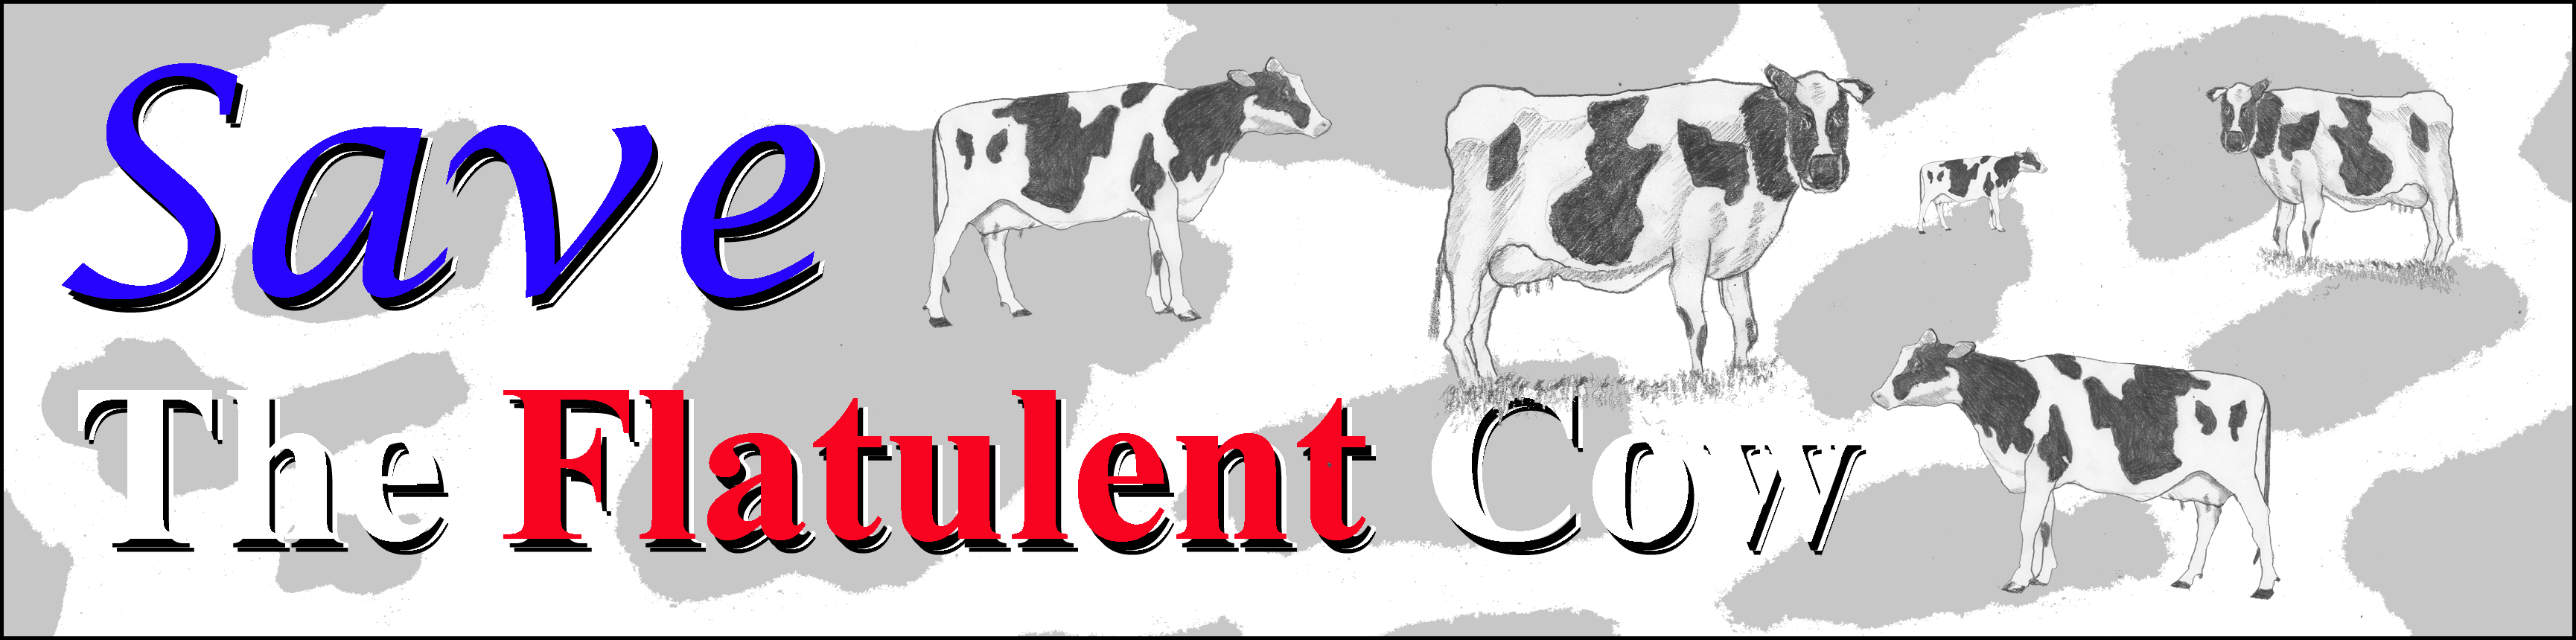 Save the Flatulent Cow Bumper Sticker